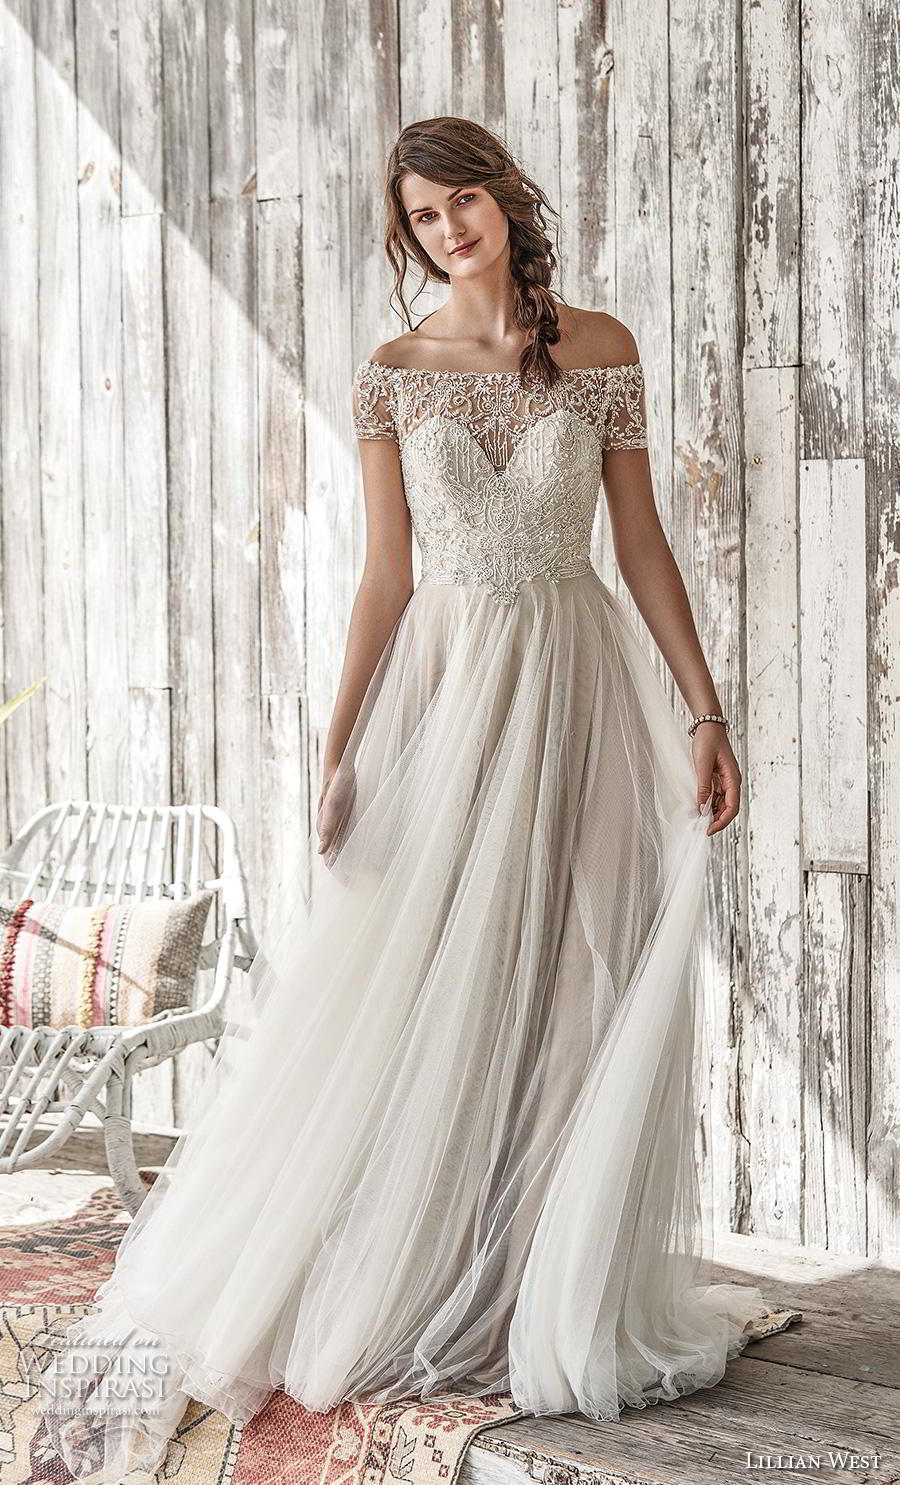 lillian west spring 2019 bridal off the shoulder illusion straight across sweetheart neckline heavily embellished bodice glitzy romantic a  line wedding dress chapel train (7) mv